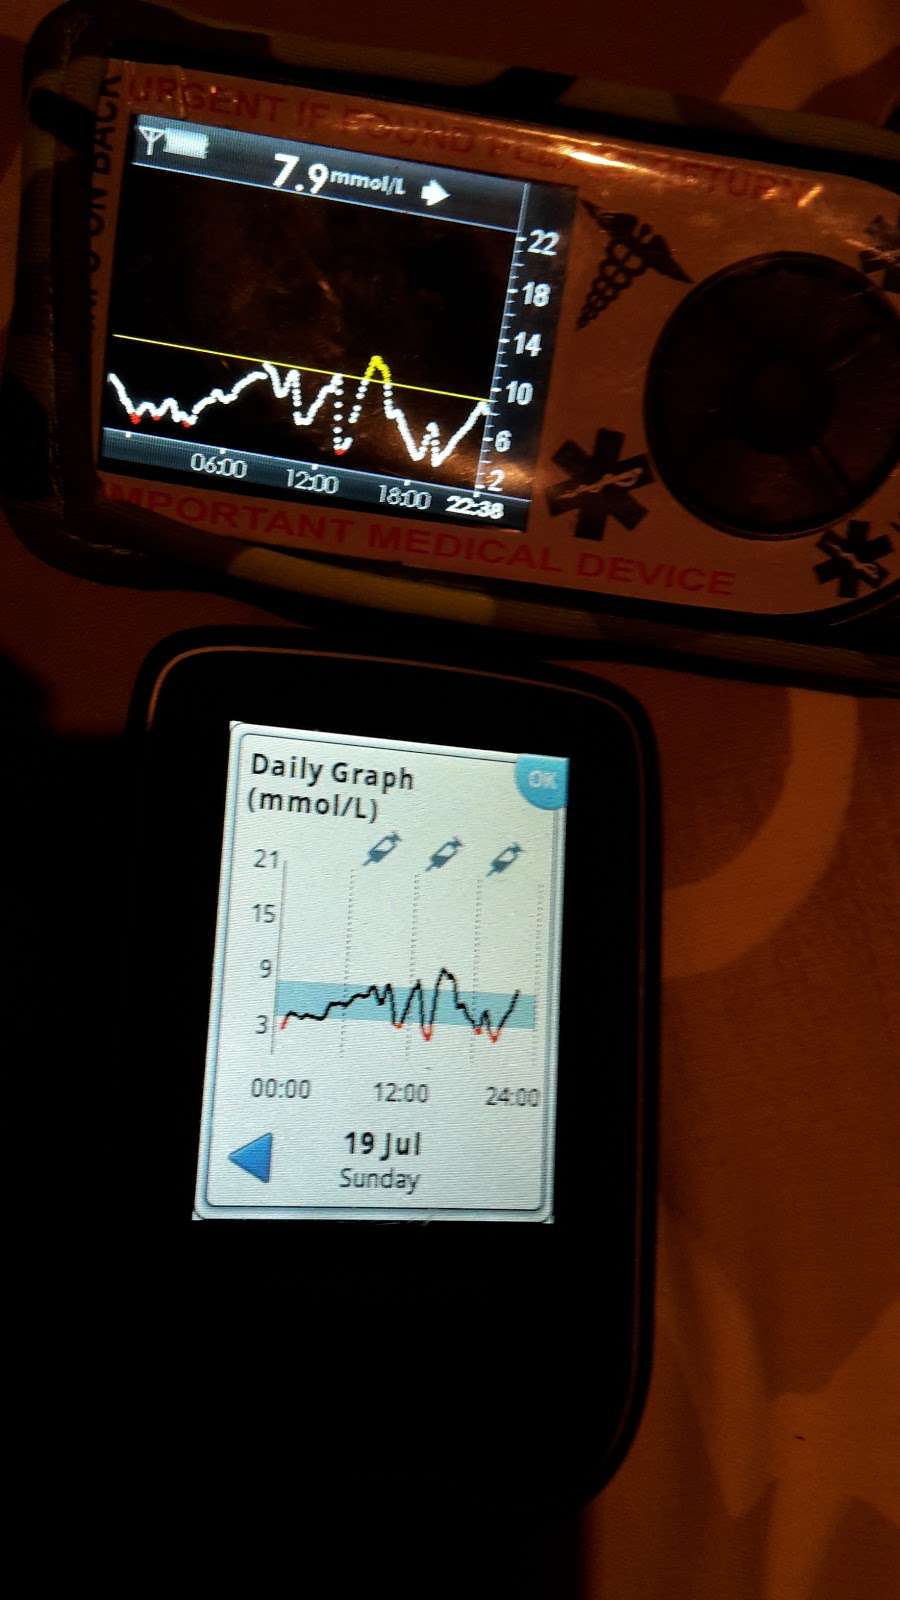 Living With T1d Gaming My Glucose Levels With Freestyle Libre And